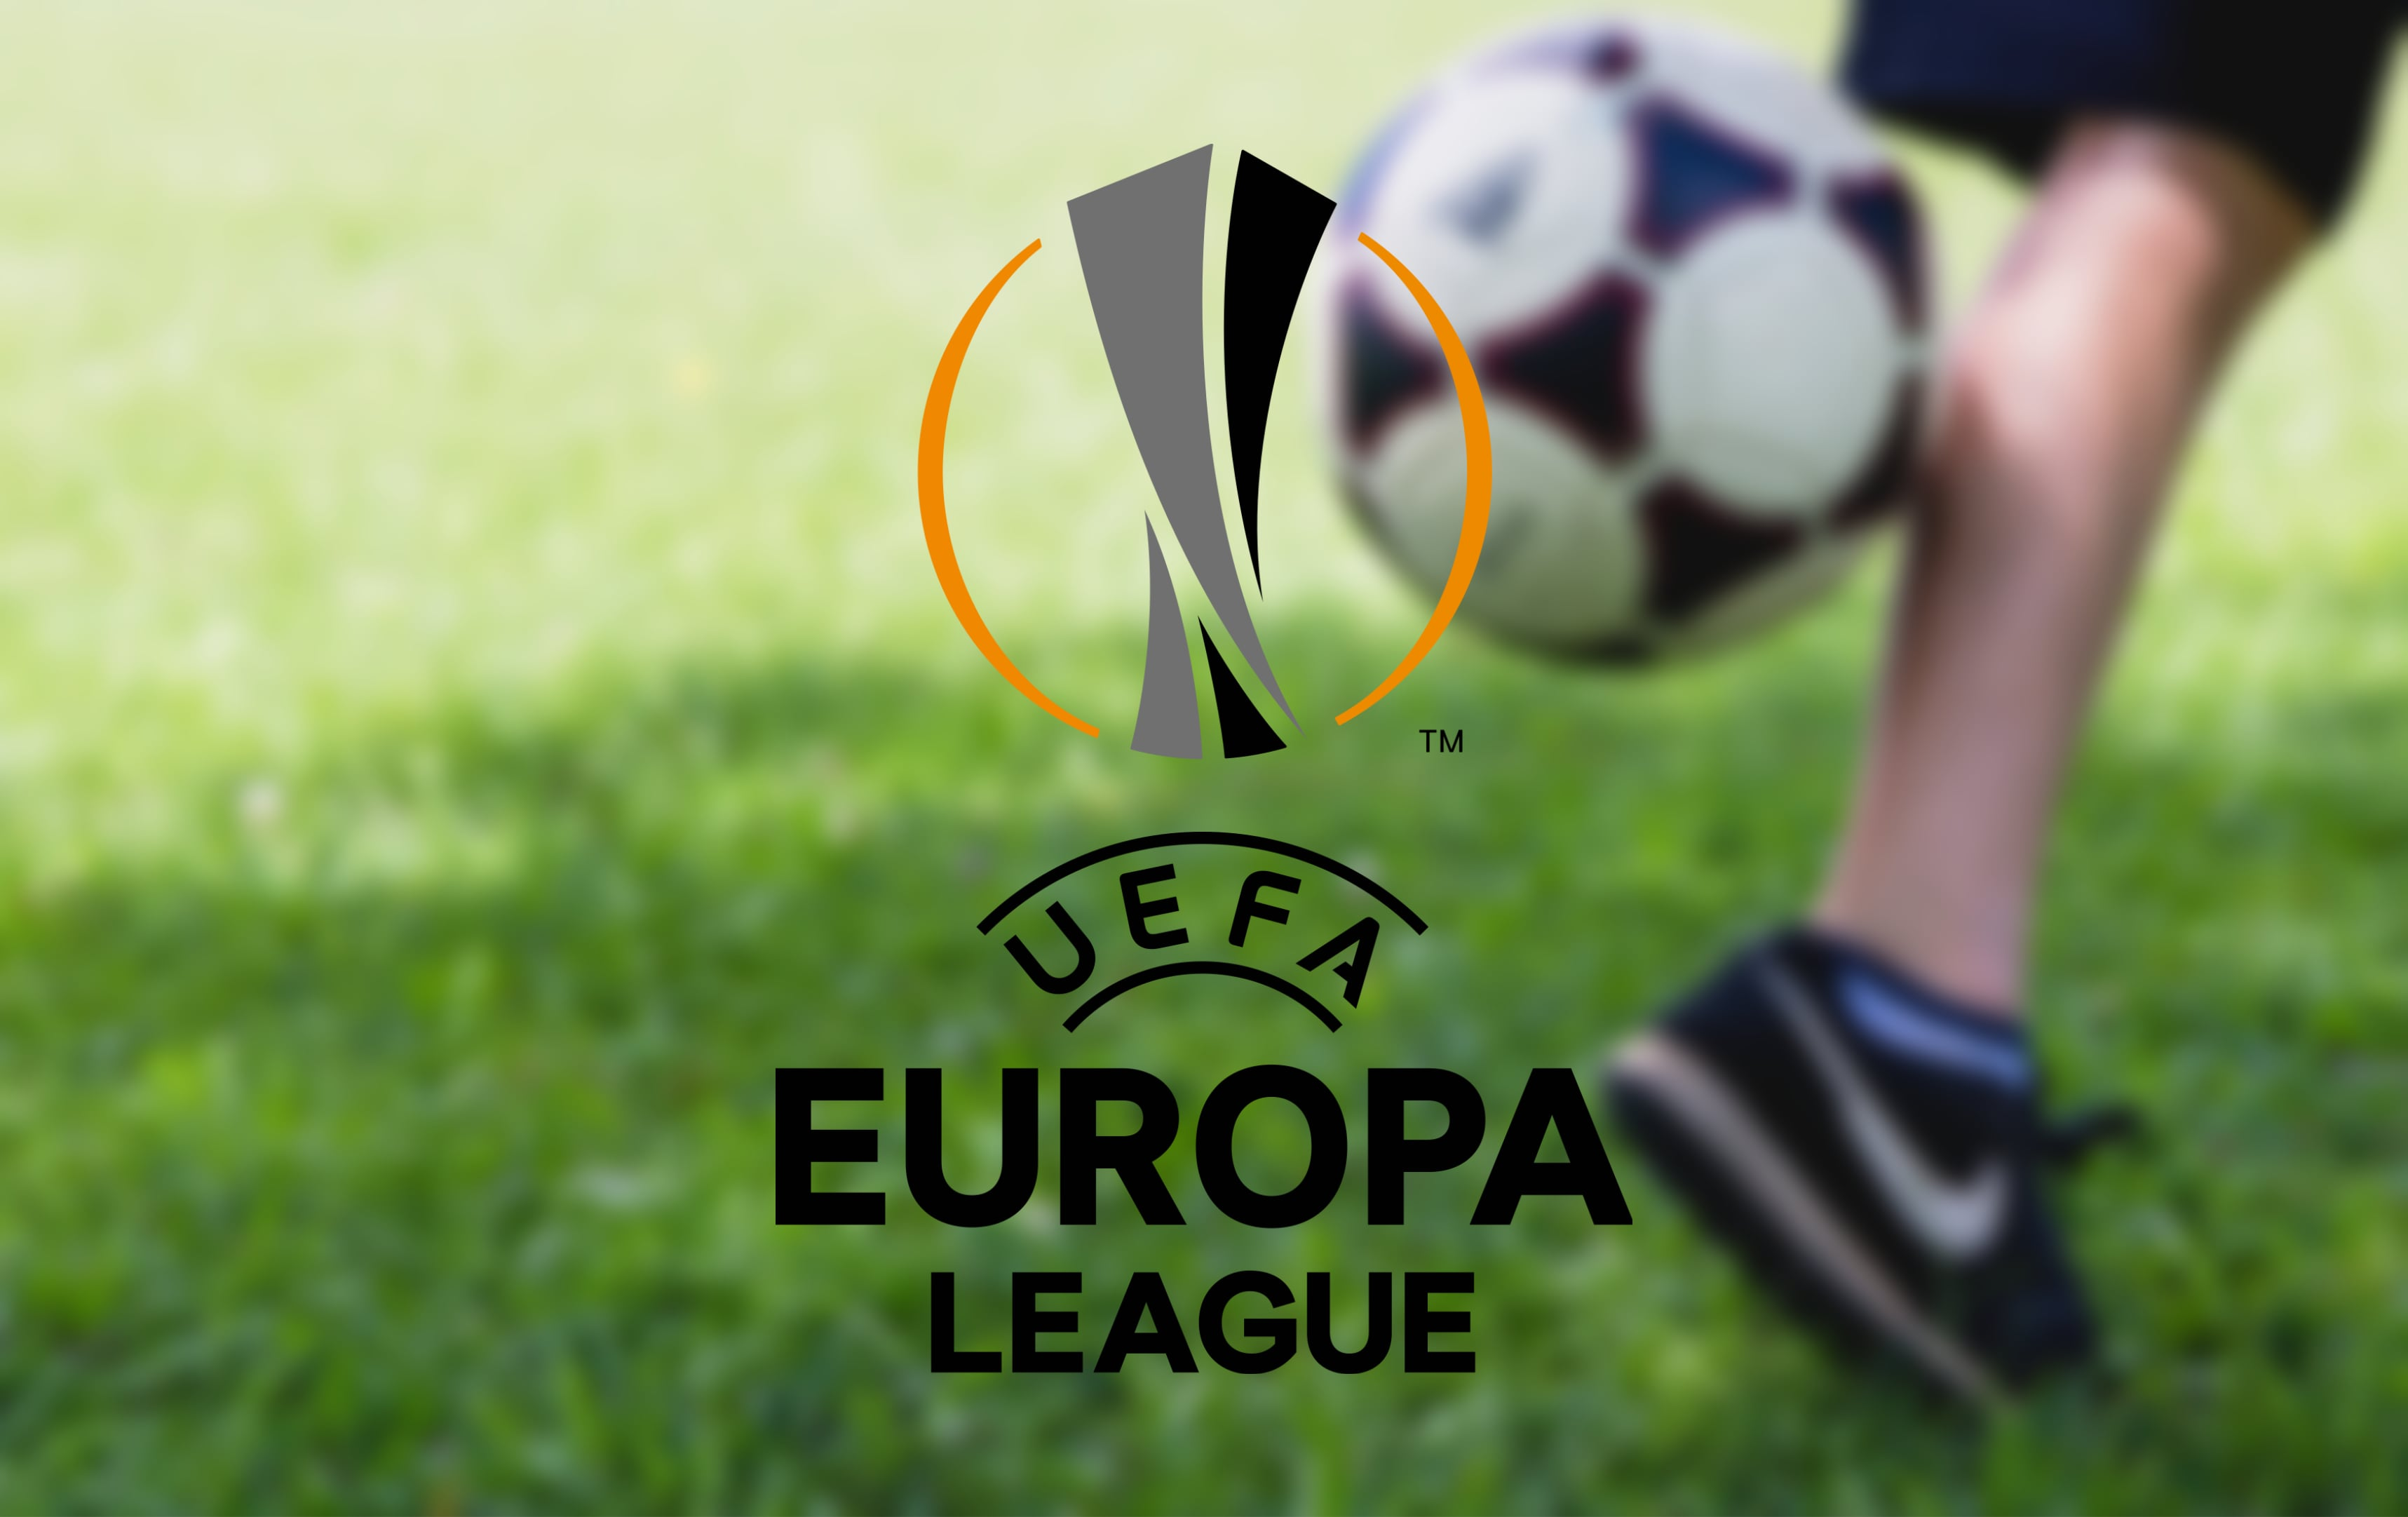 Europa League Third Qualifying Round Second Leg 15.08.19 Recap